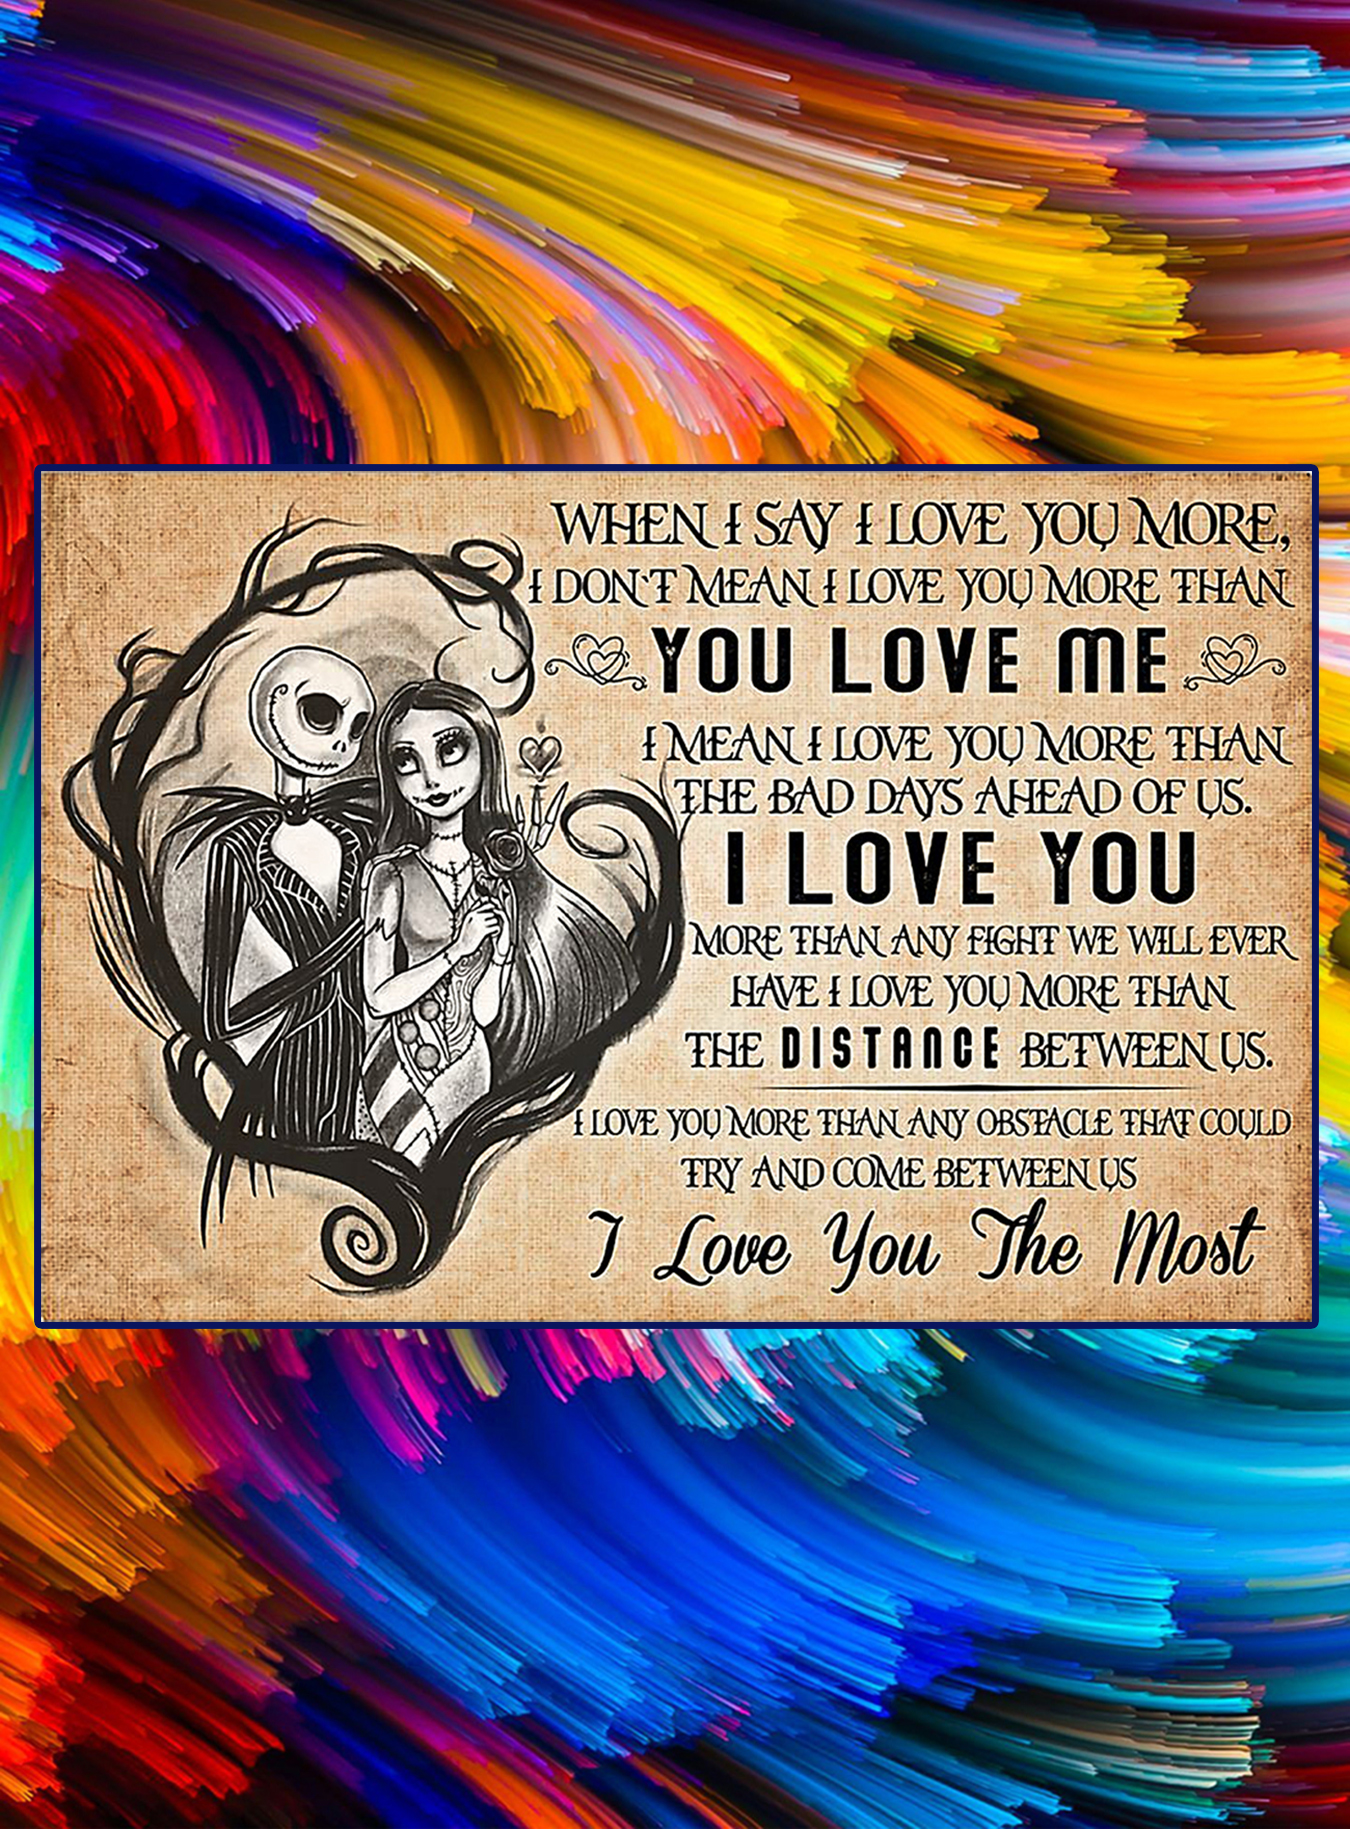 Jack and sally when I say I love you more poster - A3